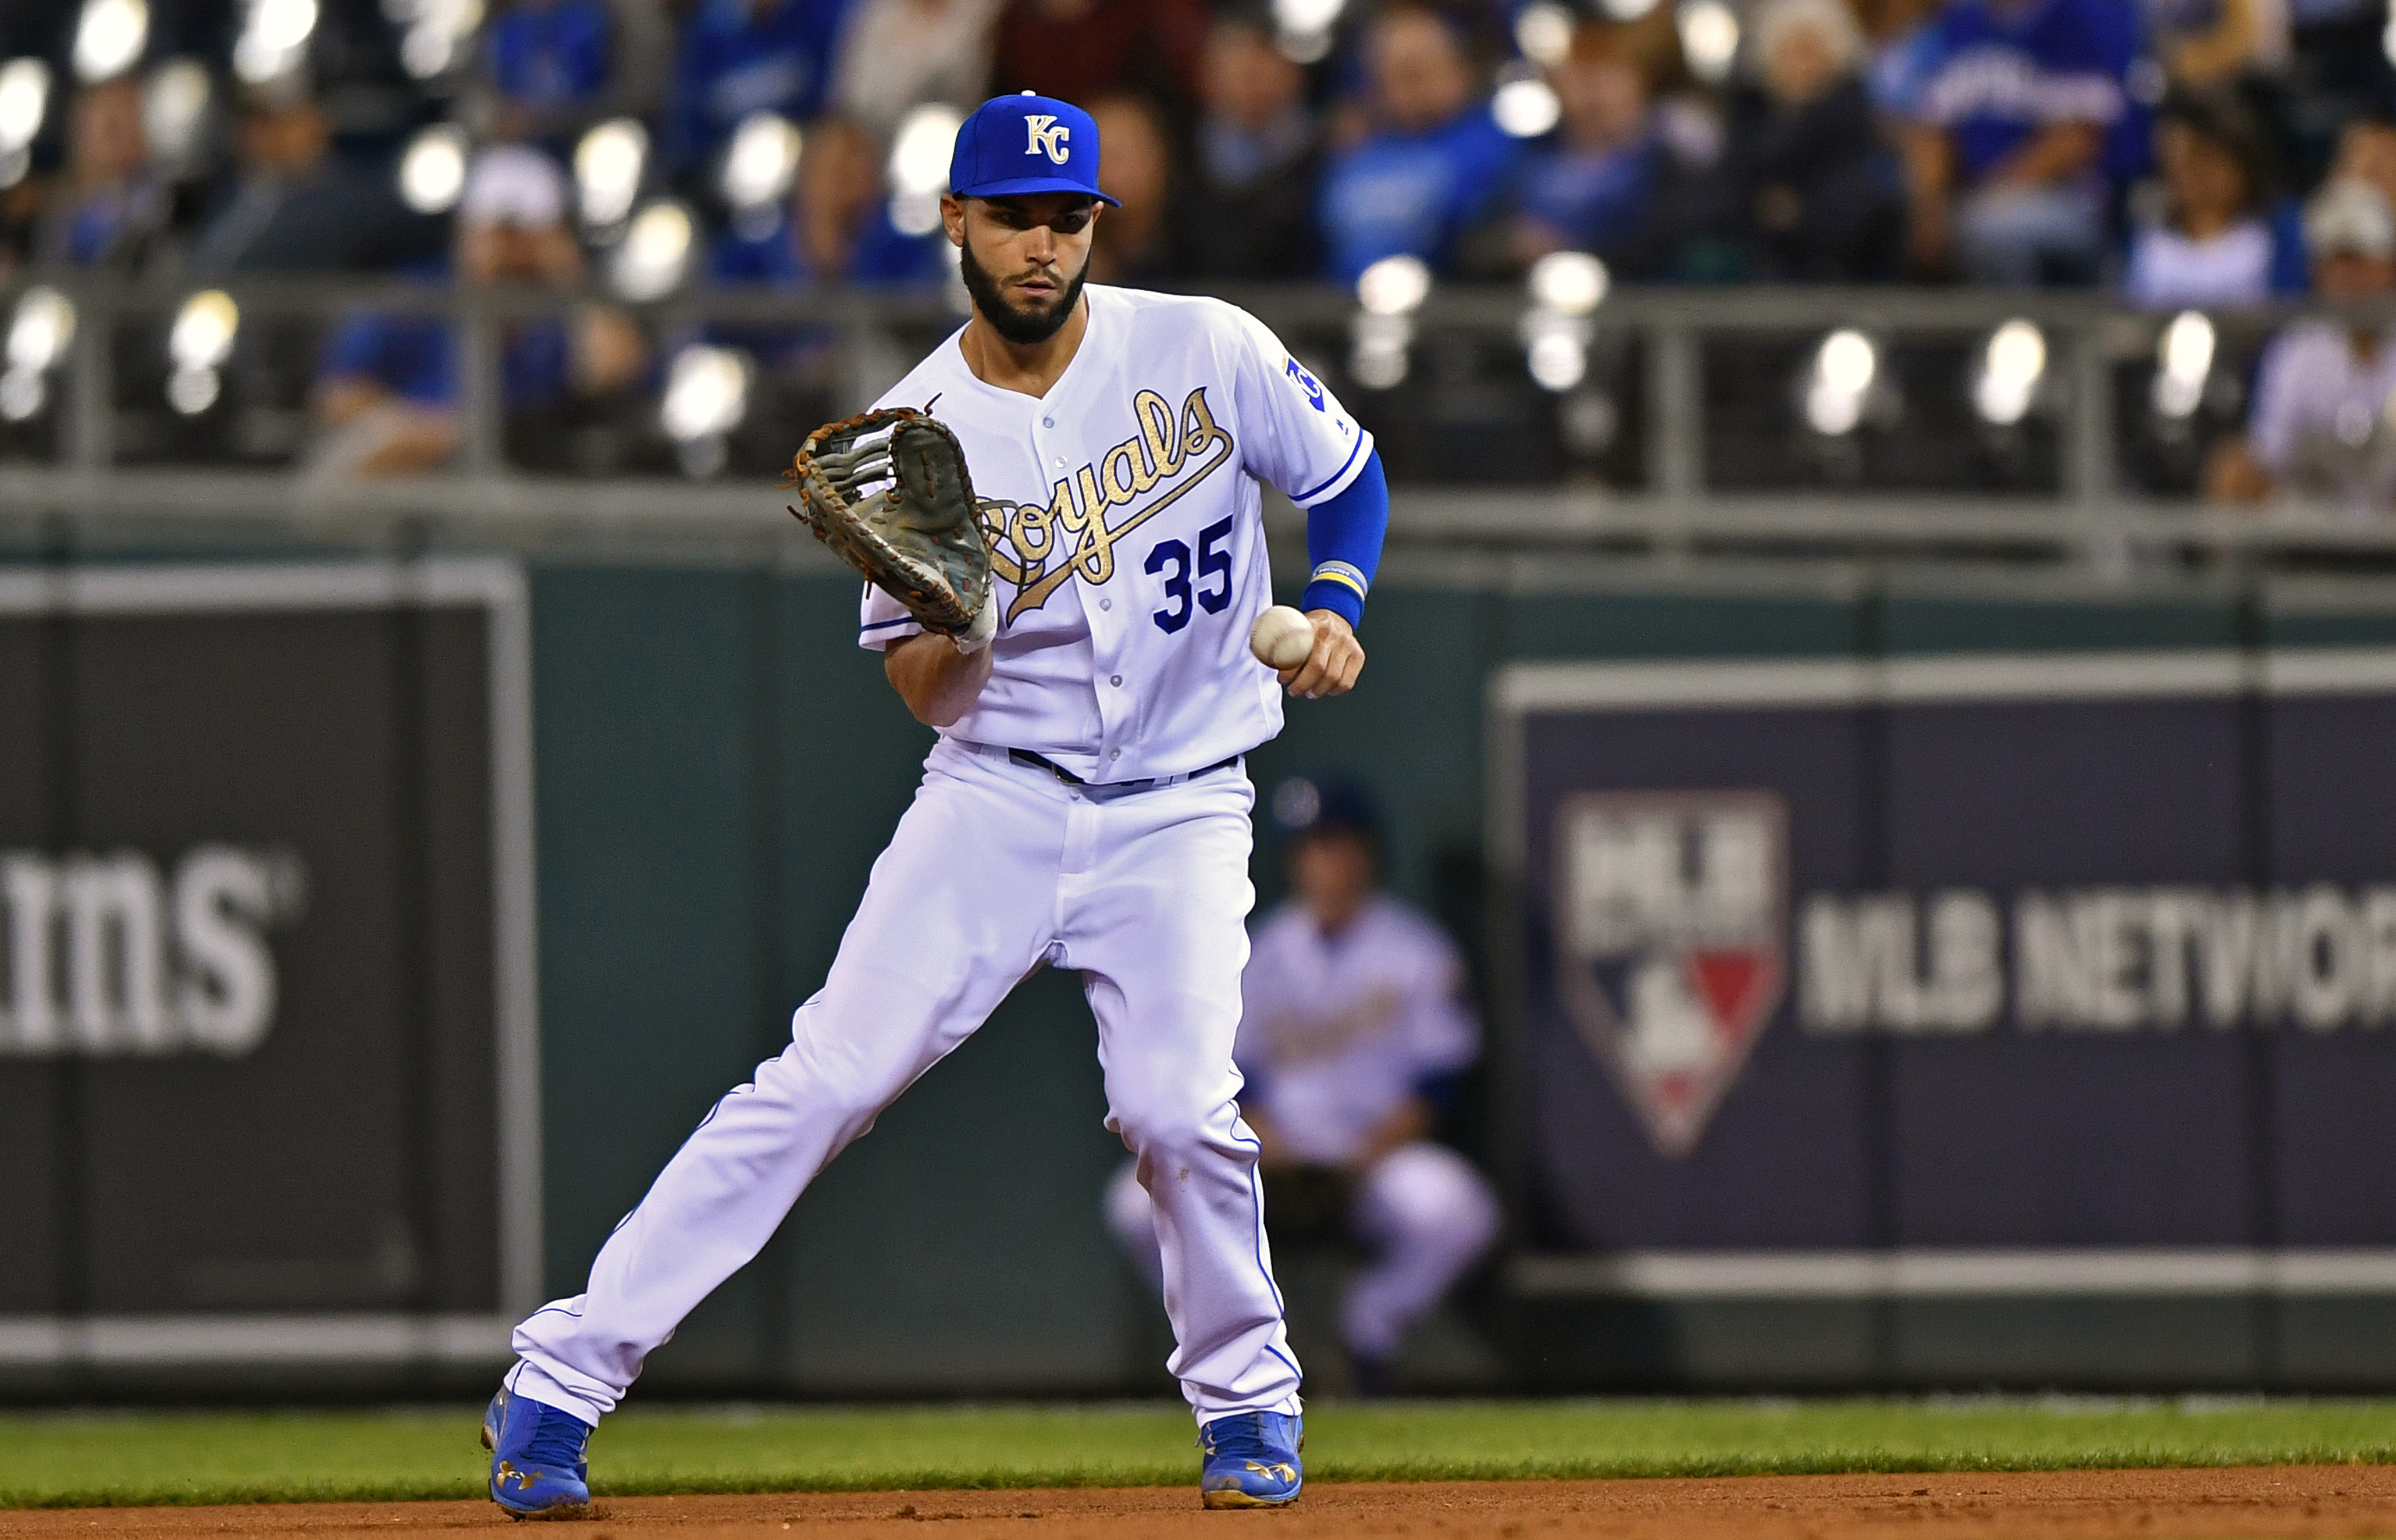 The Kansas City Royals trade block includes Eric Hosmer